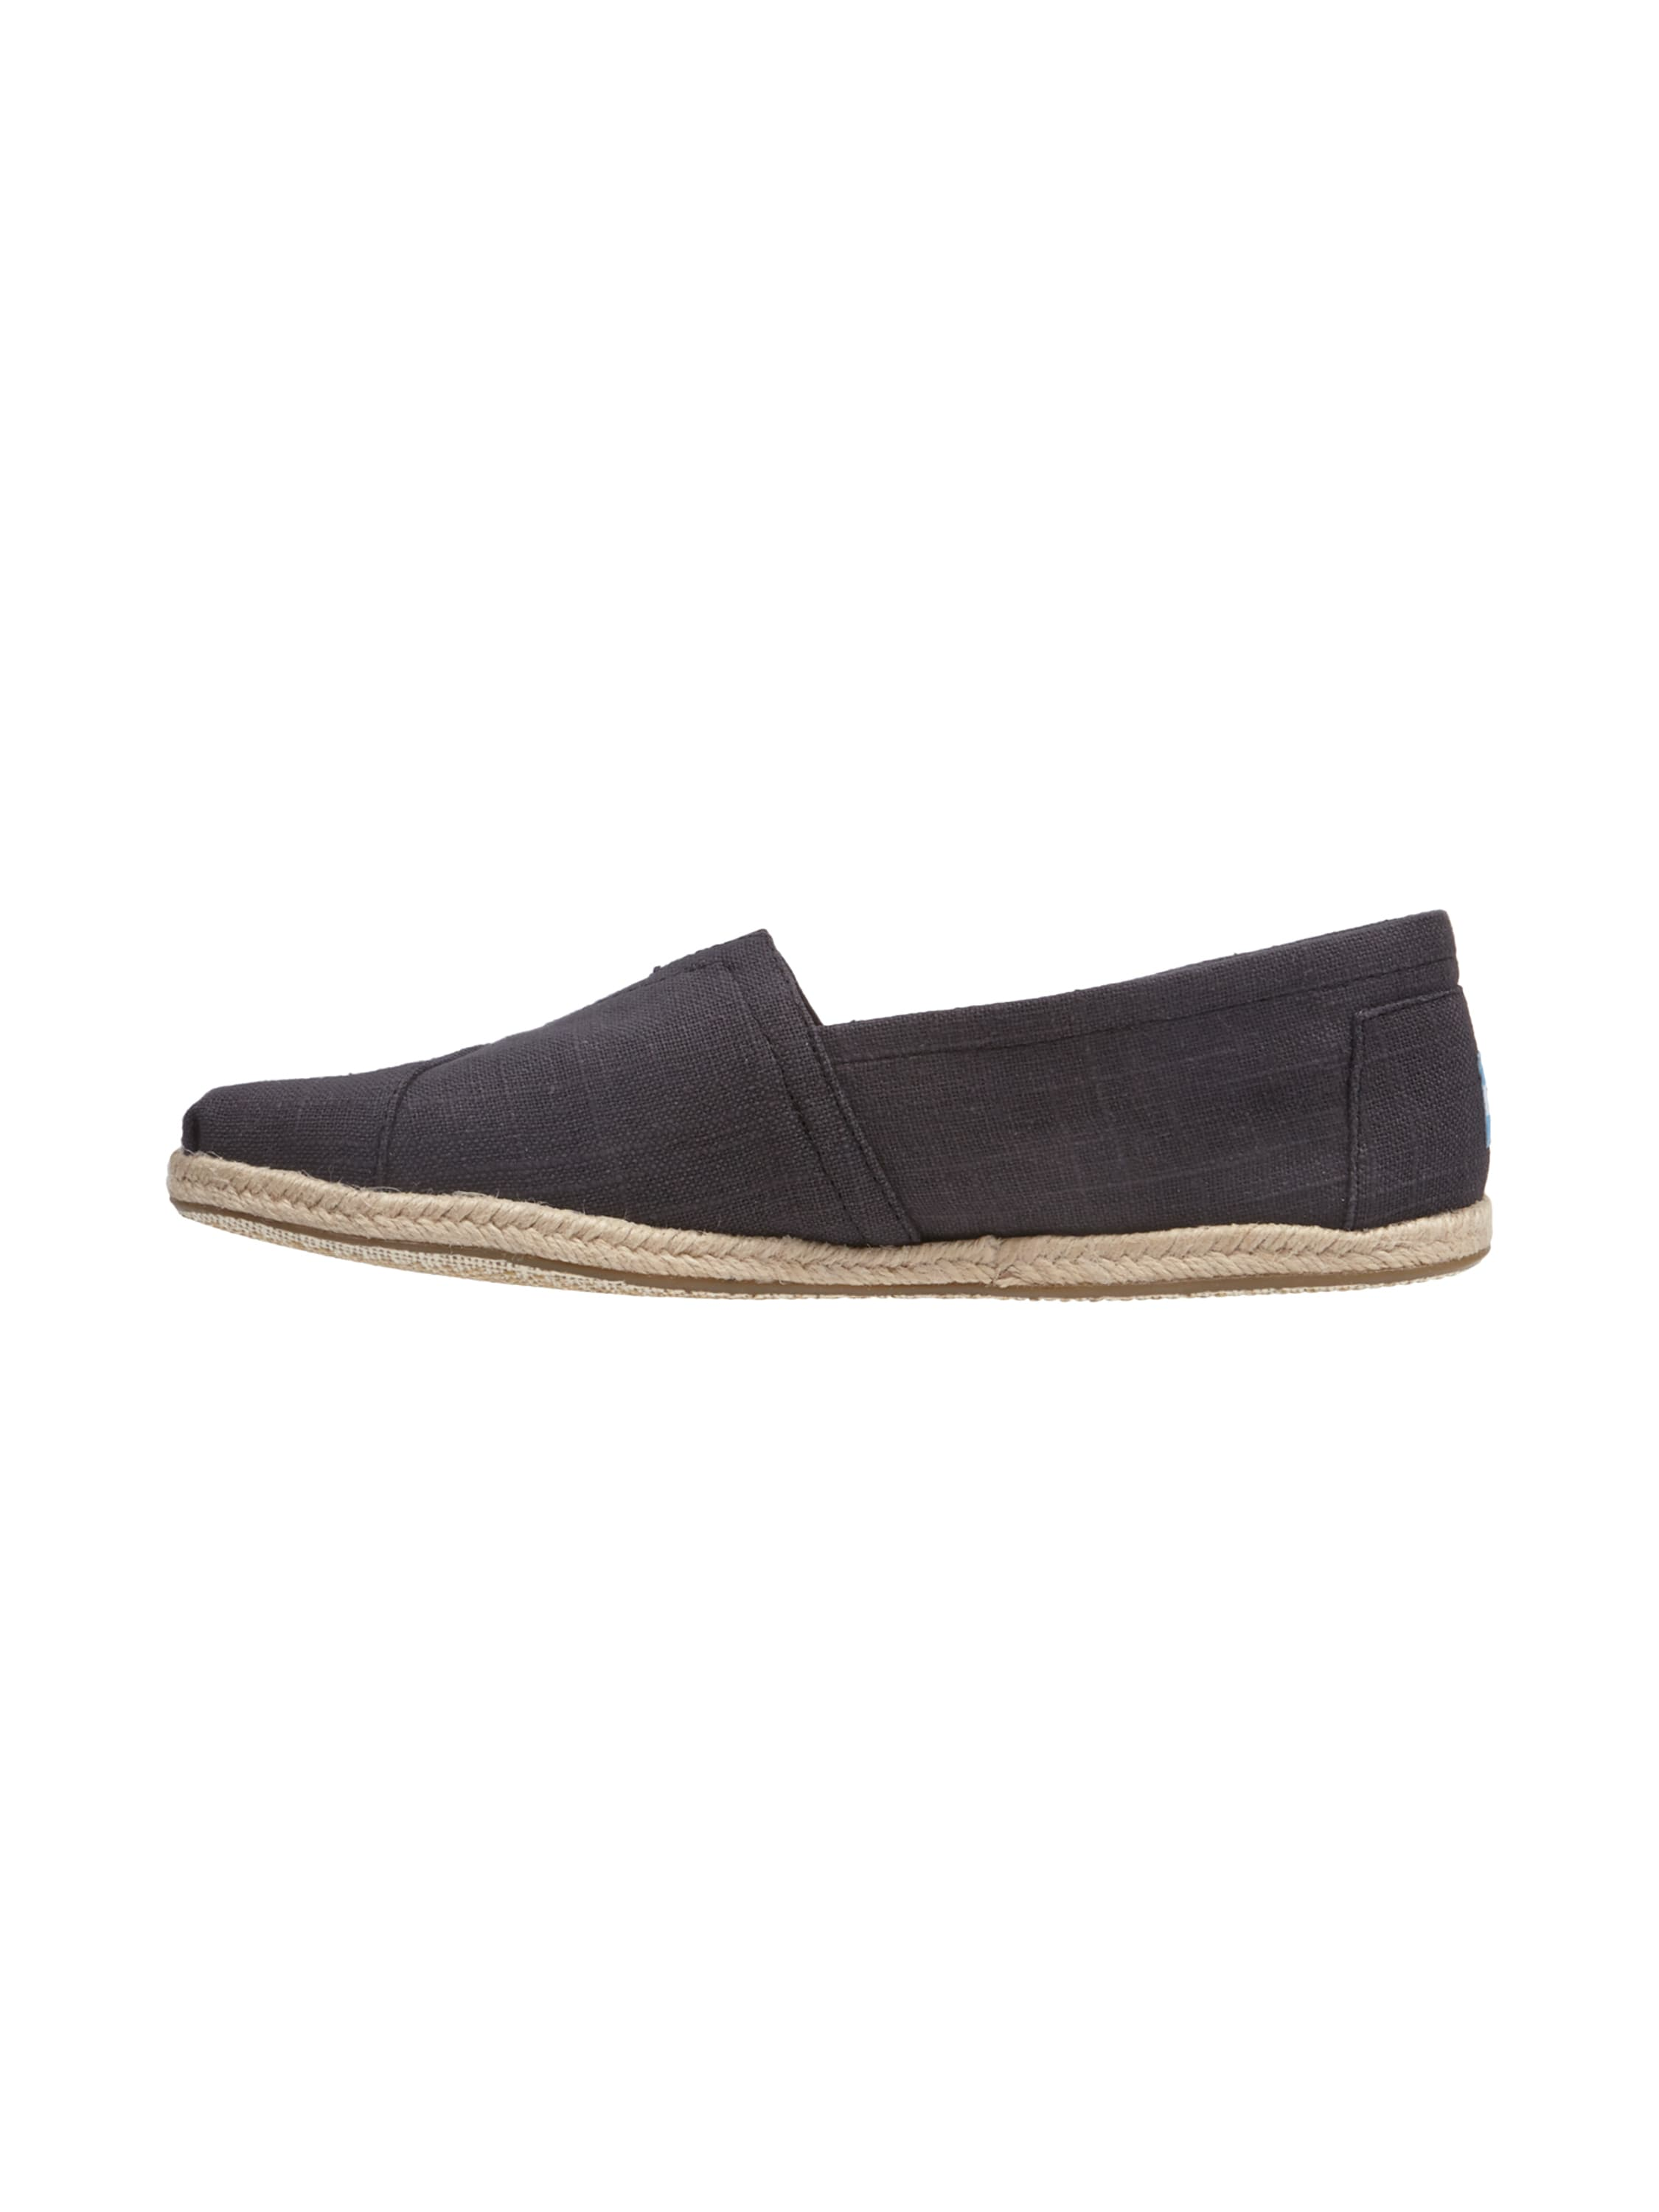 toms espadrilles aus leinen in grau schwarz online entdecken 9446446 p c online. Black Bedroom Furniture Sets. Home Design Ideas